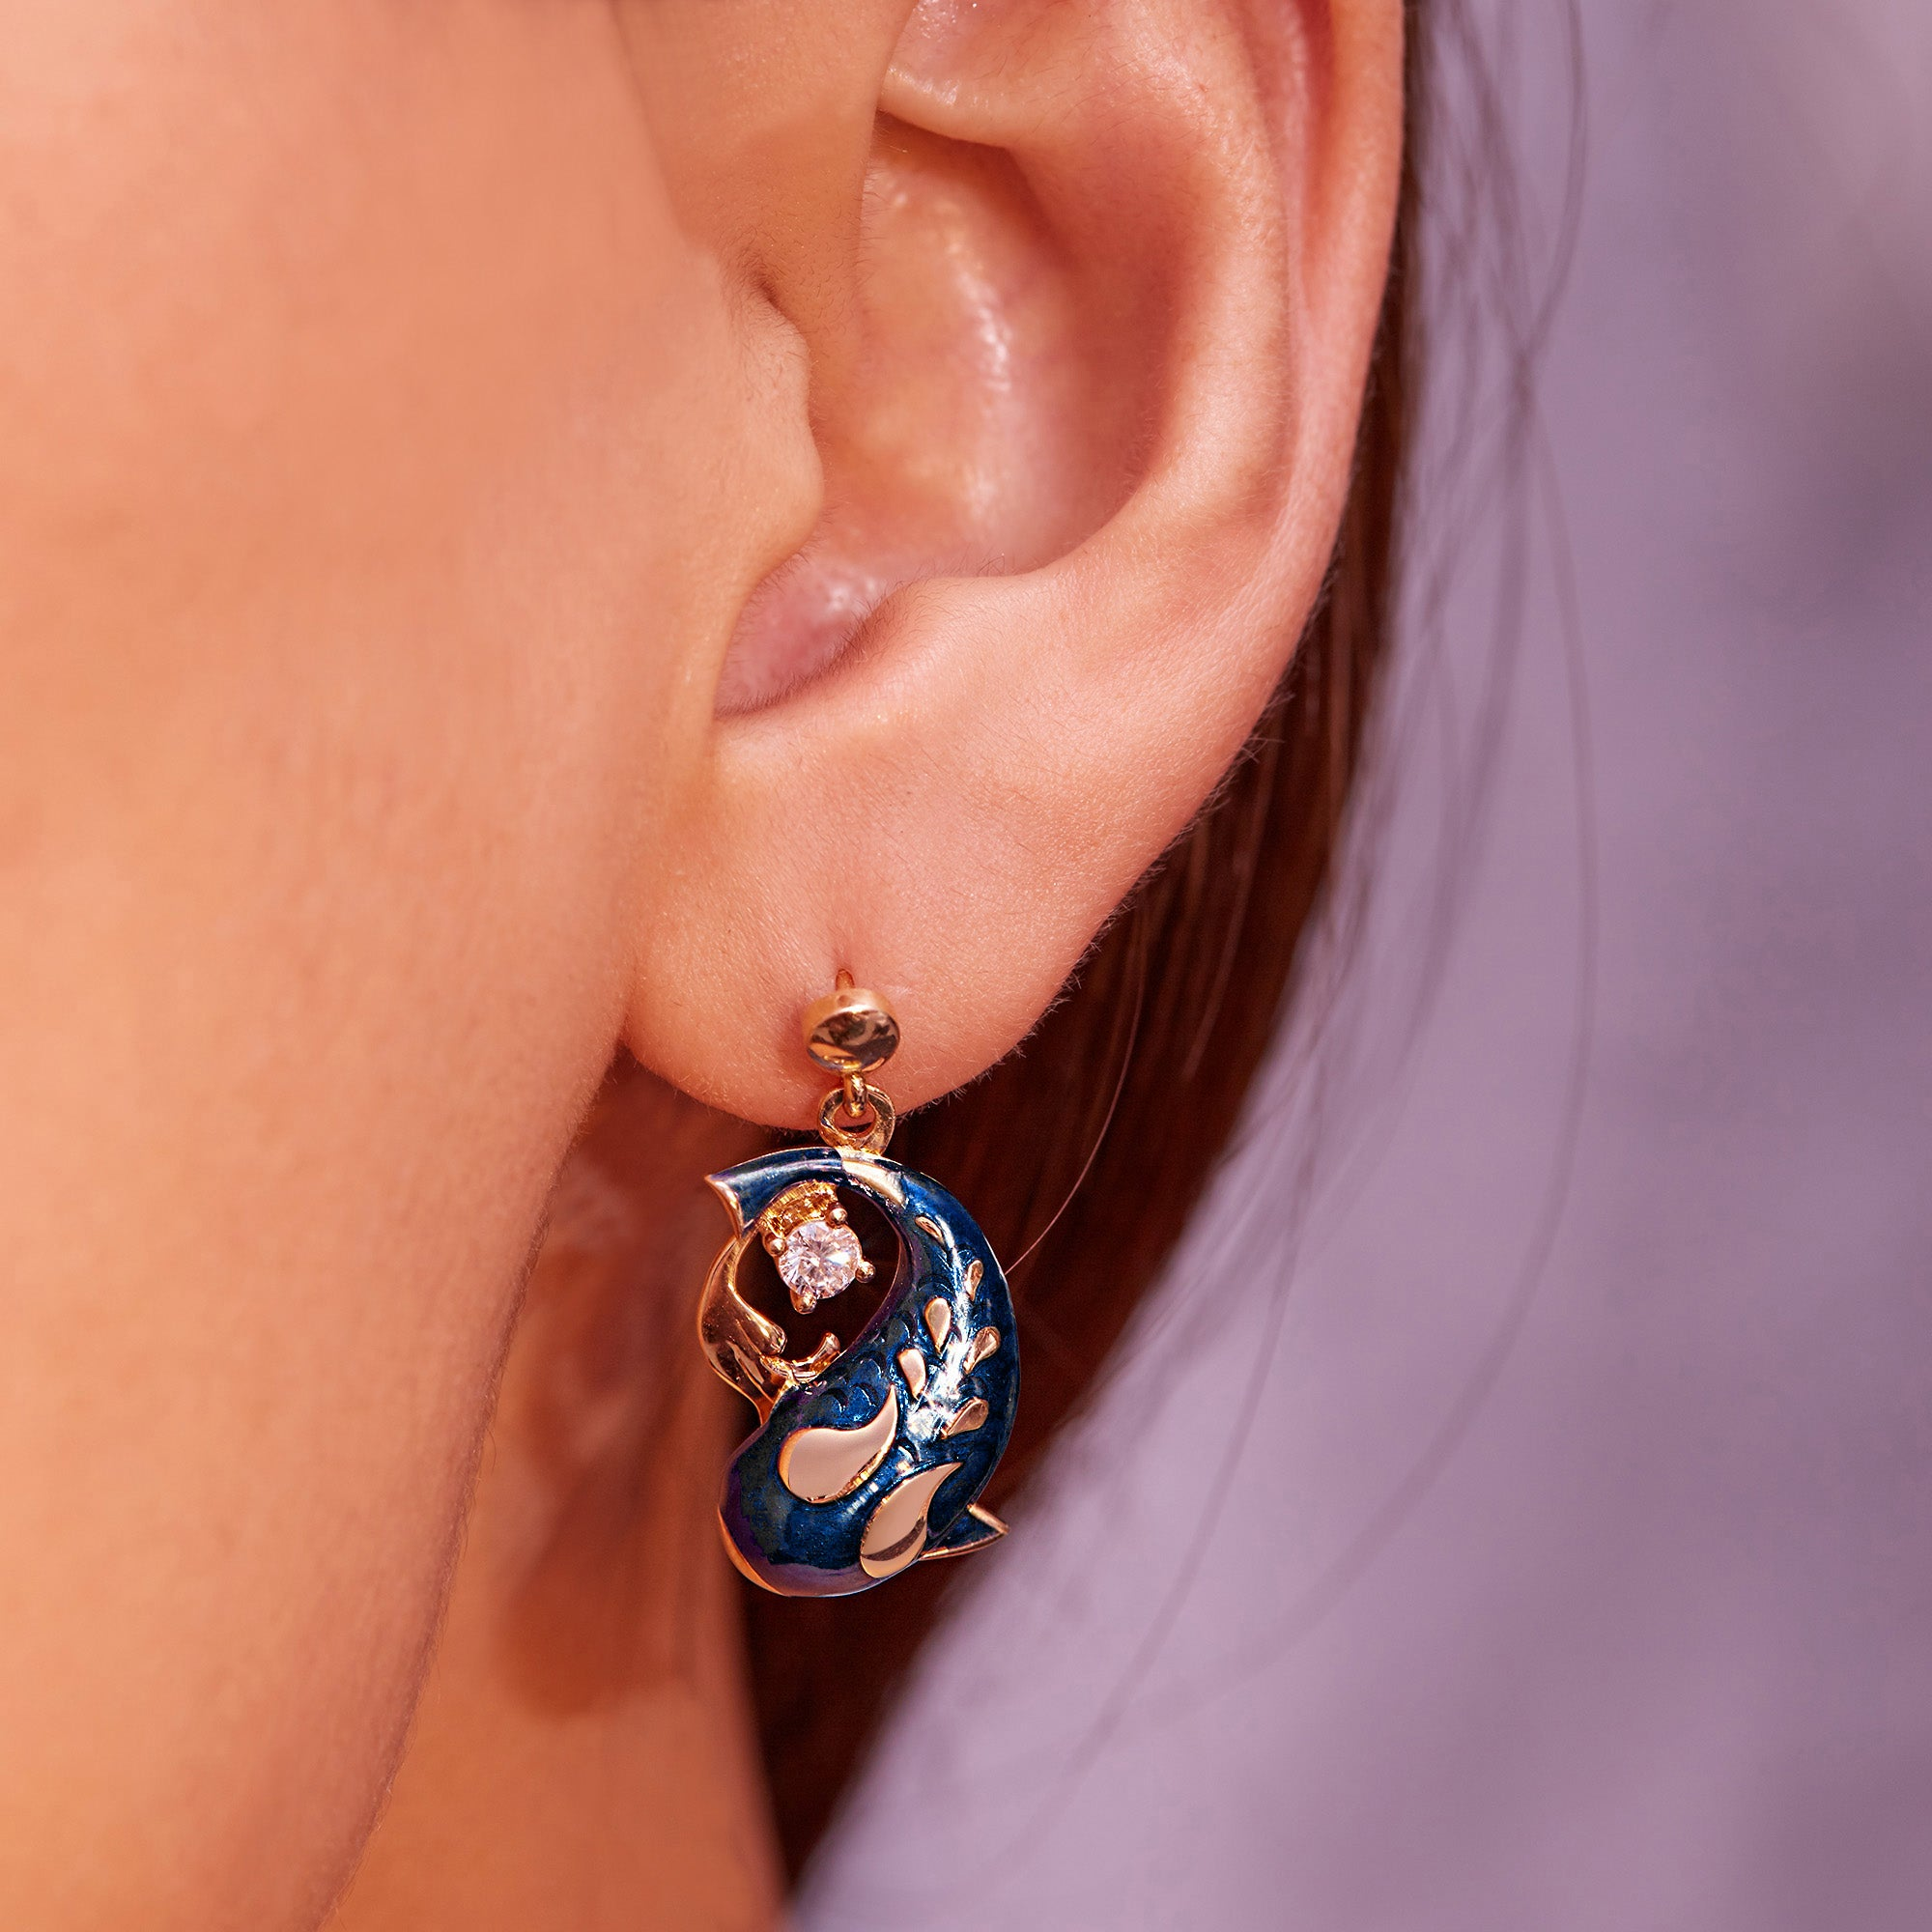 Zen Koi Earrings | 18K Gold + Diamonds + High-temperature Vitreous Enamel